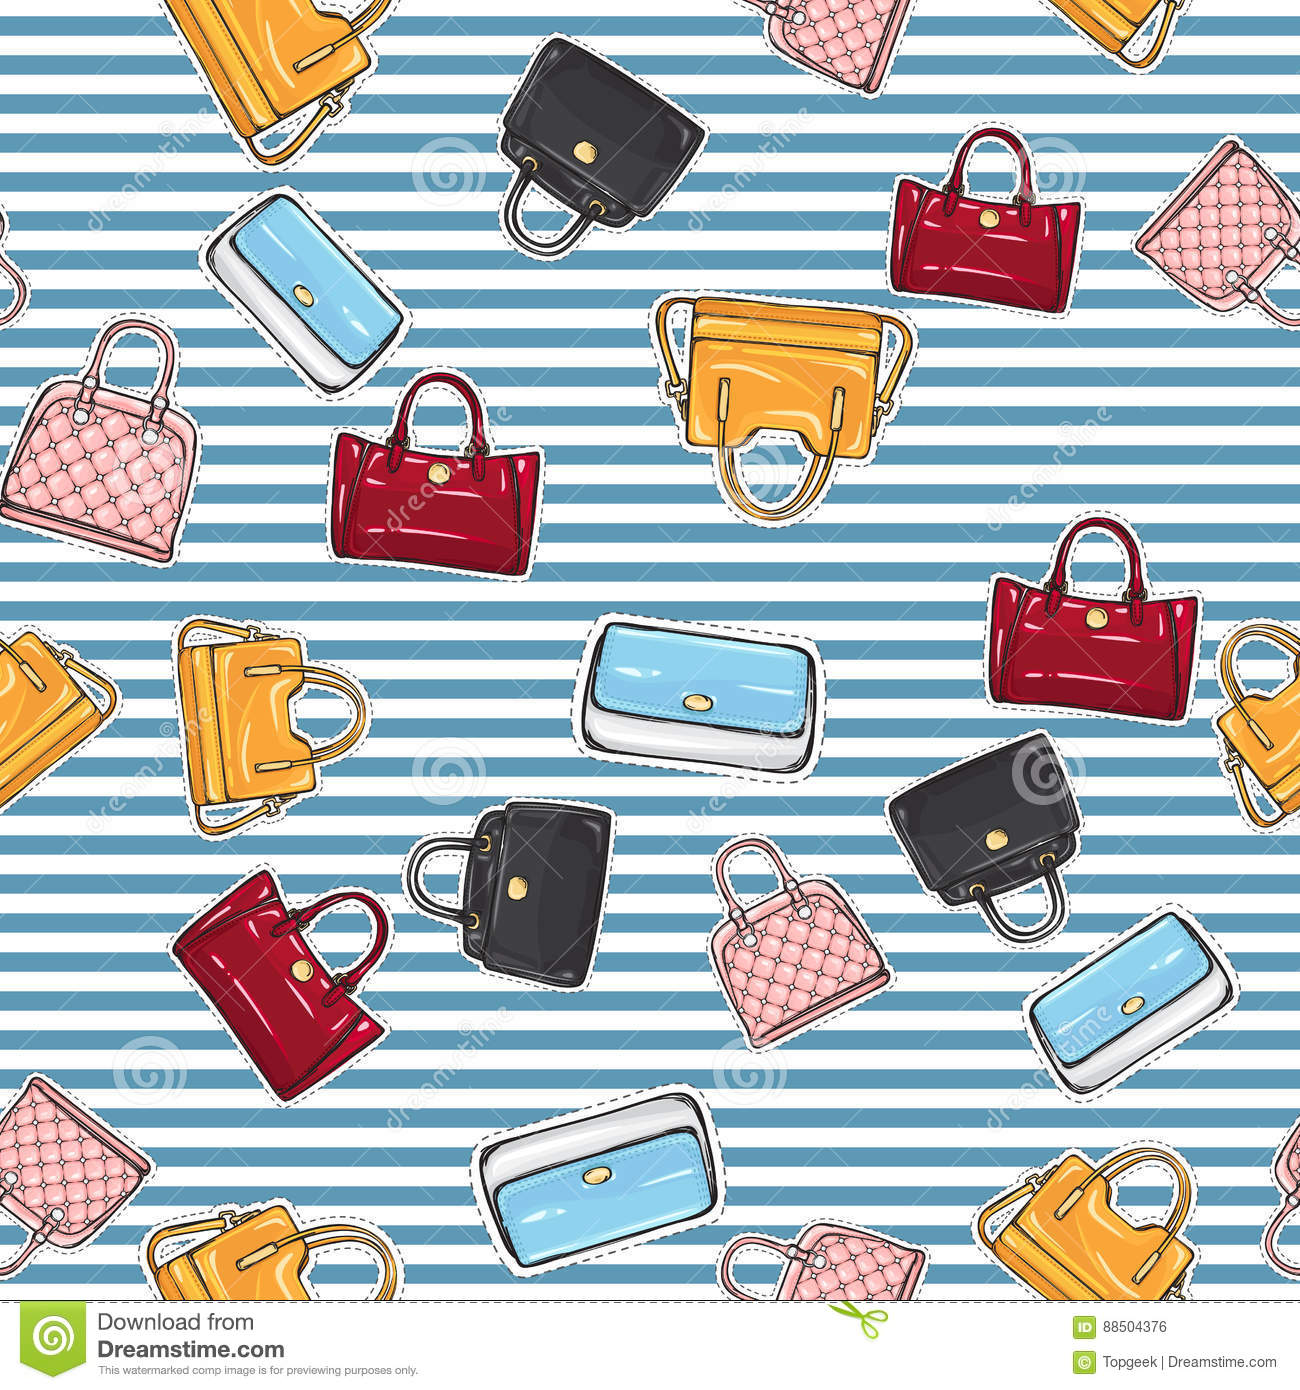 83a9c77a3c Collection of different women handbags on endless texture. Poster. Red